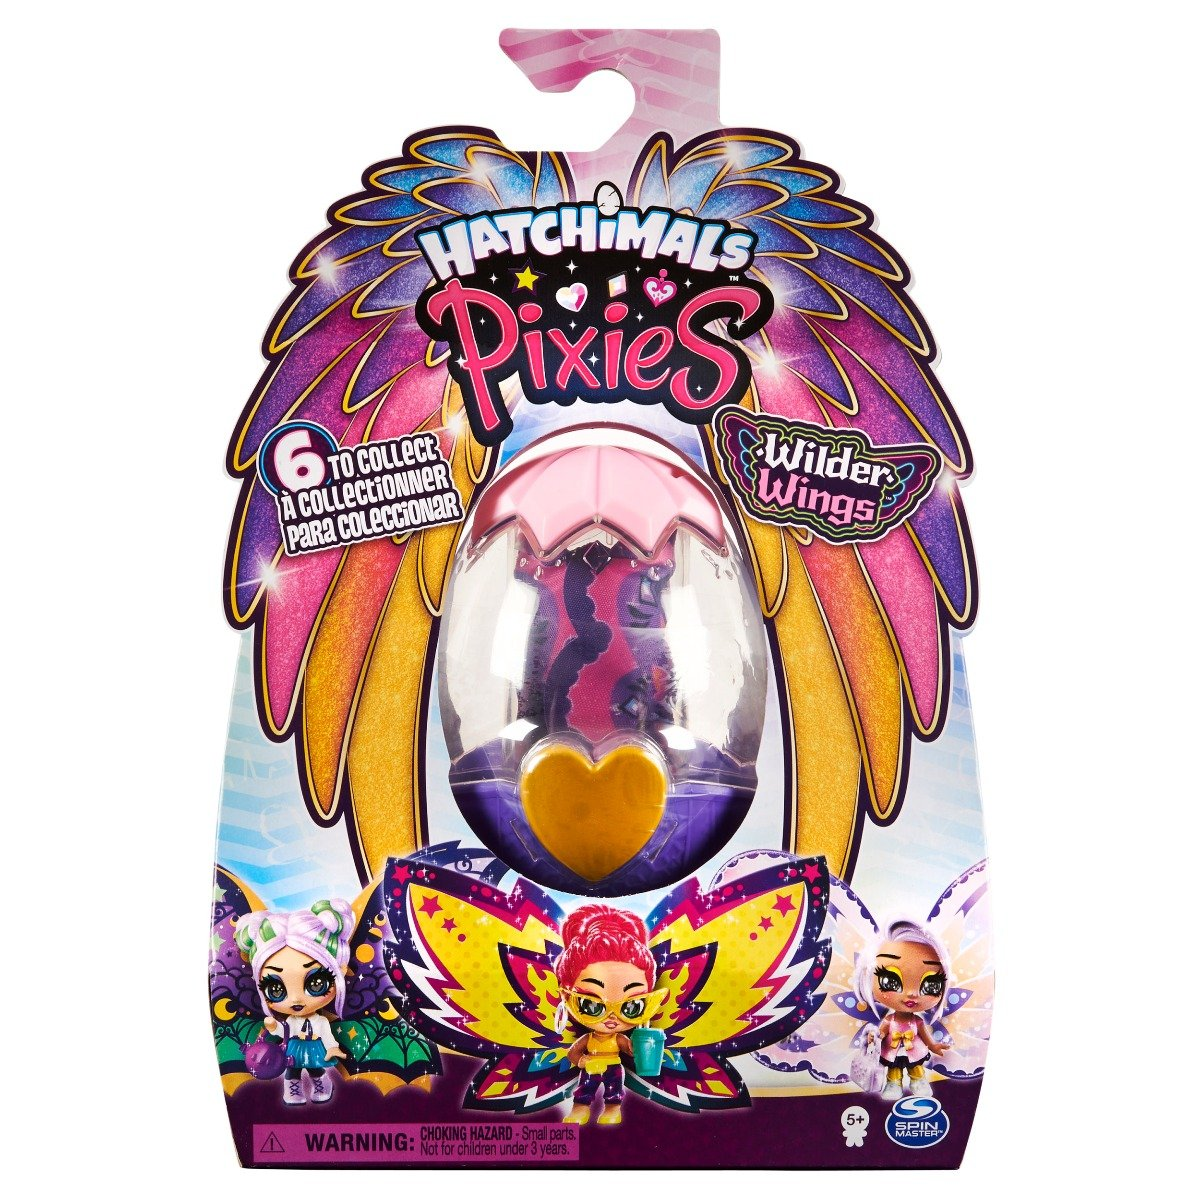 Figurina surpriza Hatchimals Pixies Wilder Wings 20127410